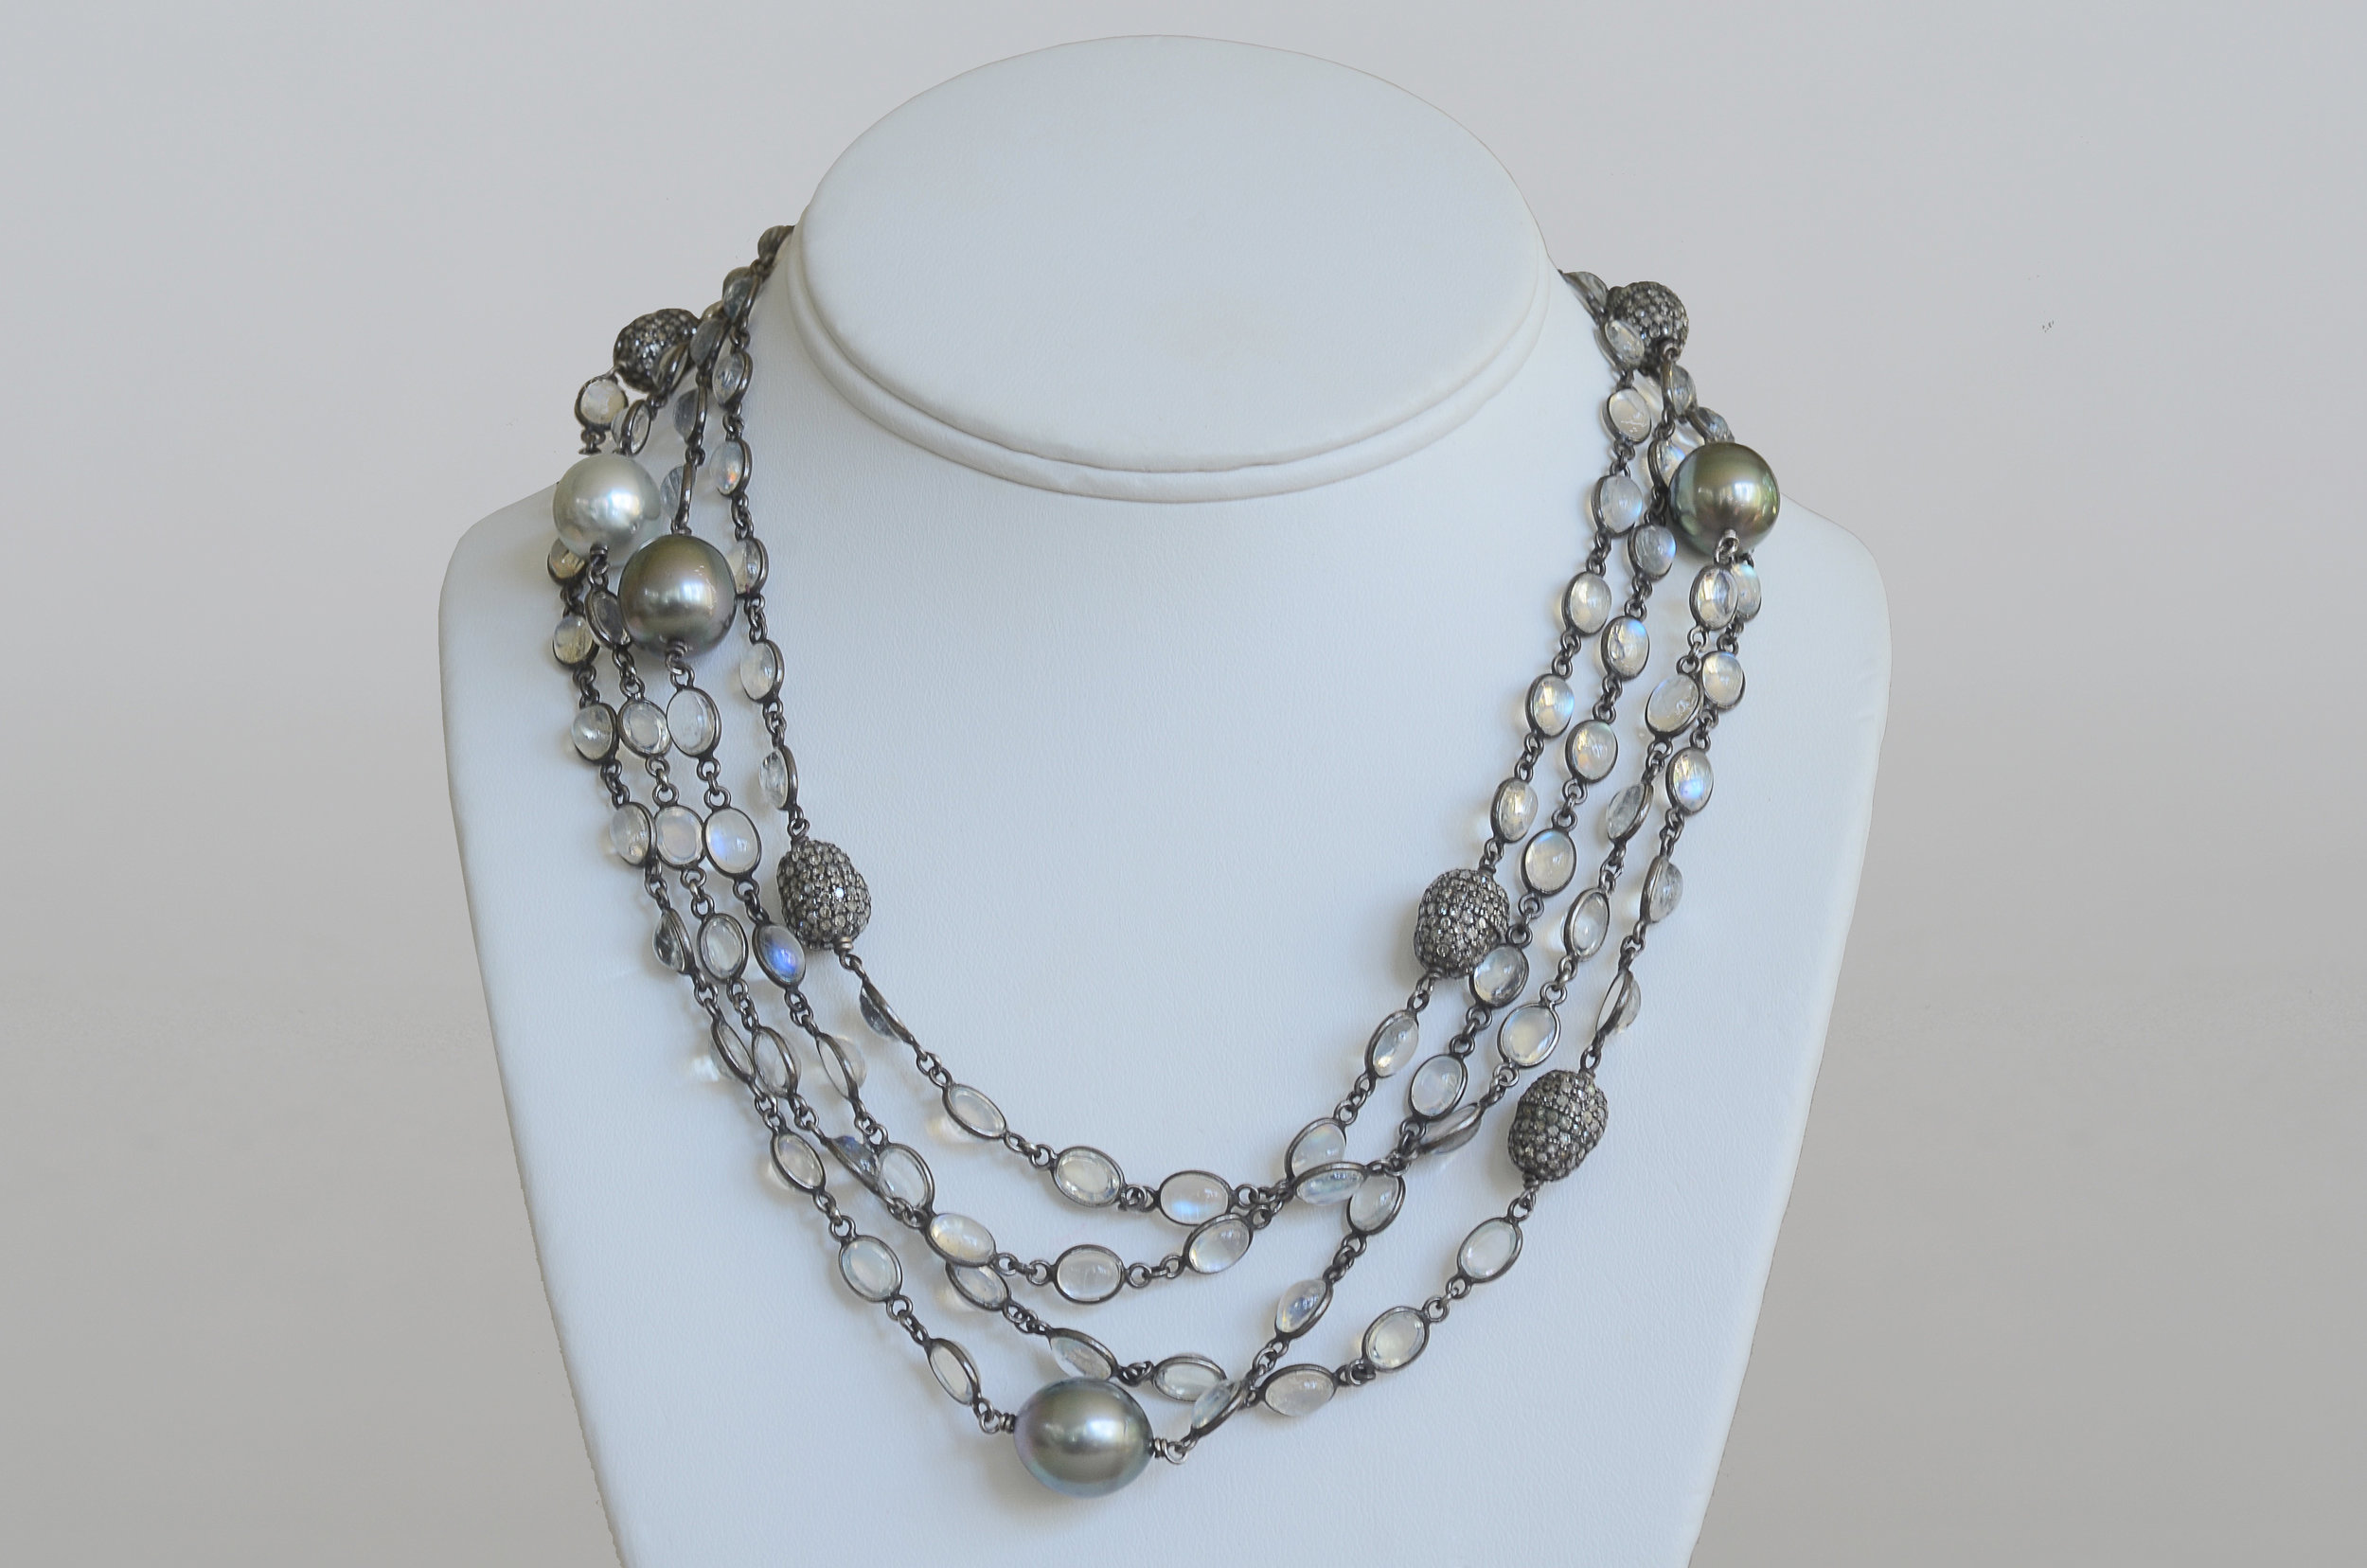 South Sea Pearl, Tahitian Moonstone and Pave Diamond Bead Necklace set in Sterling Silver